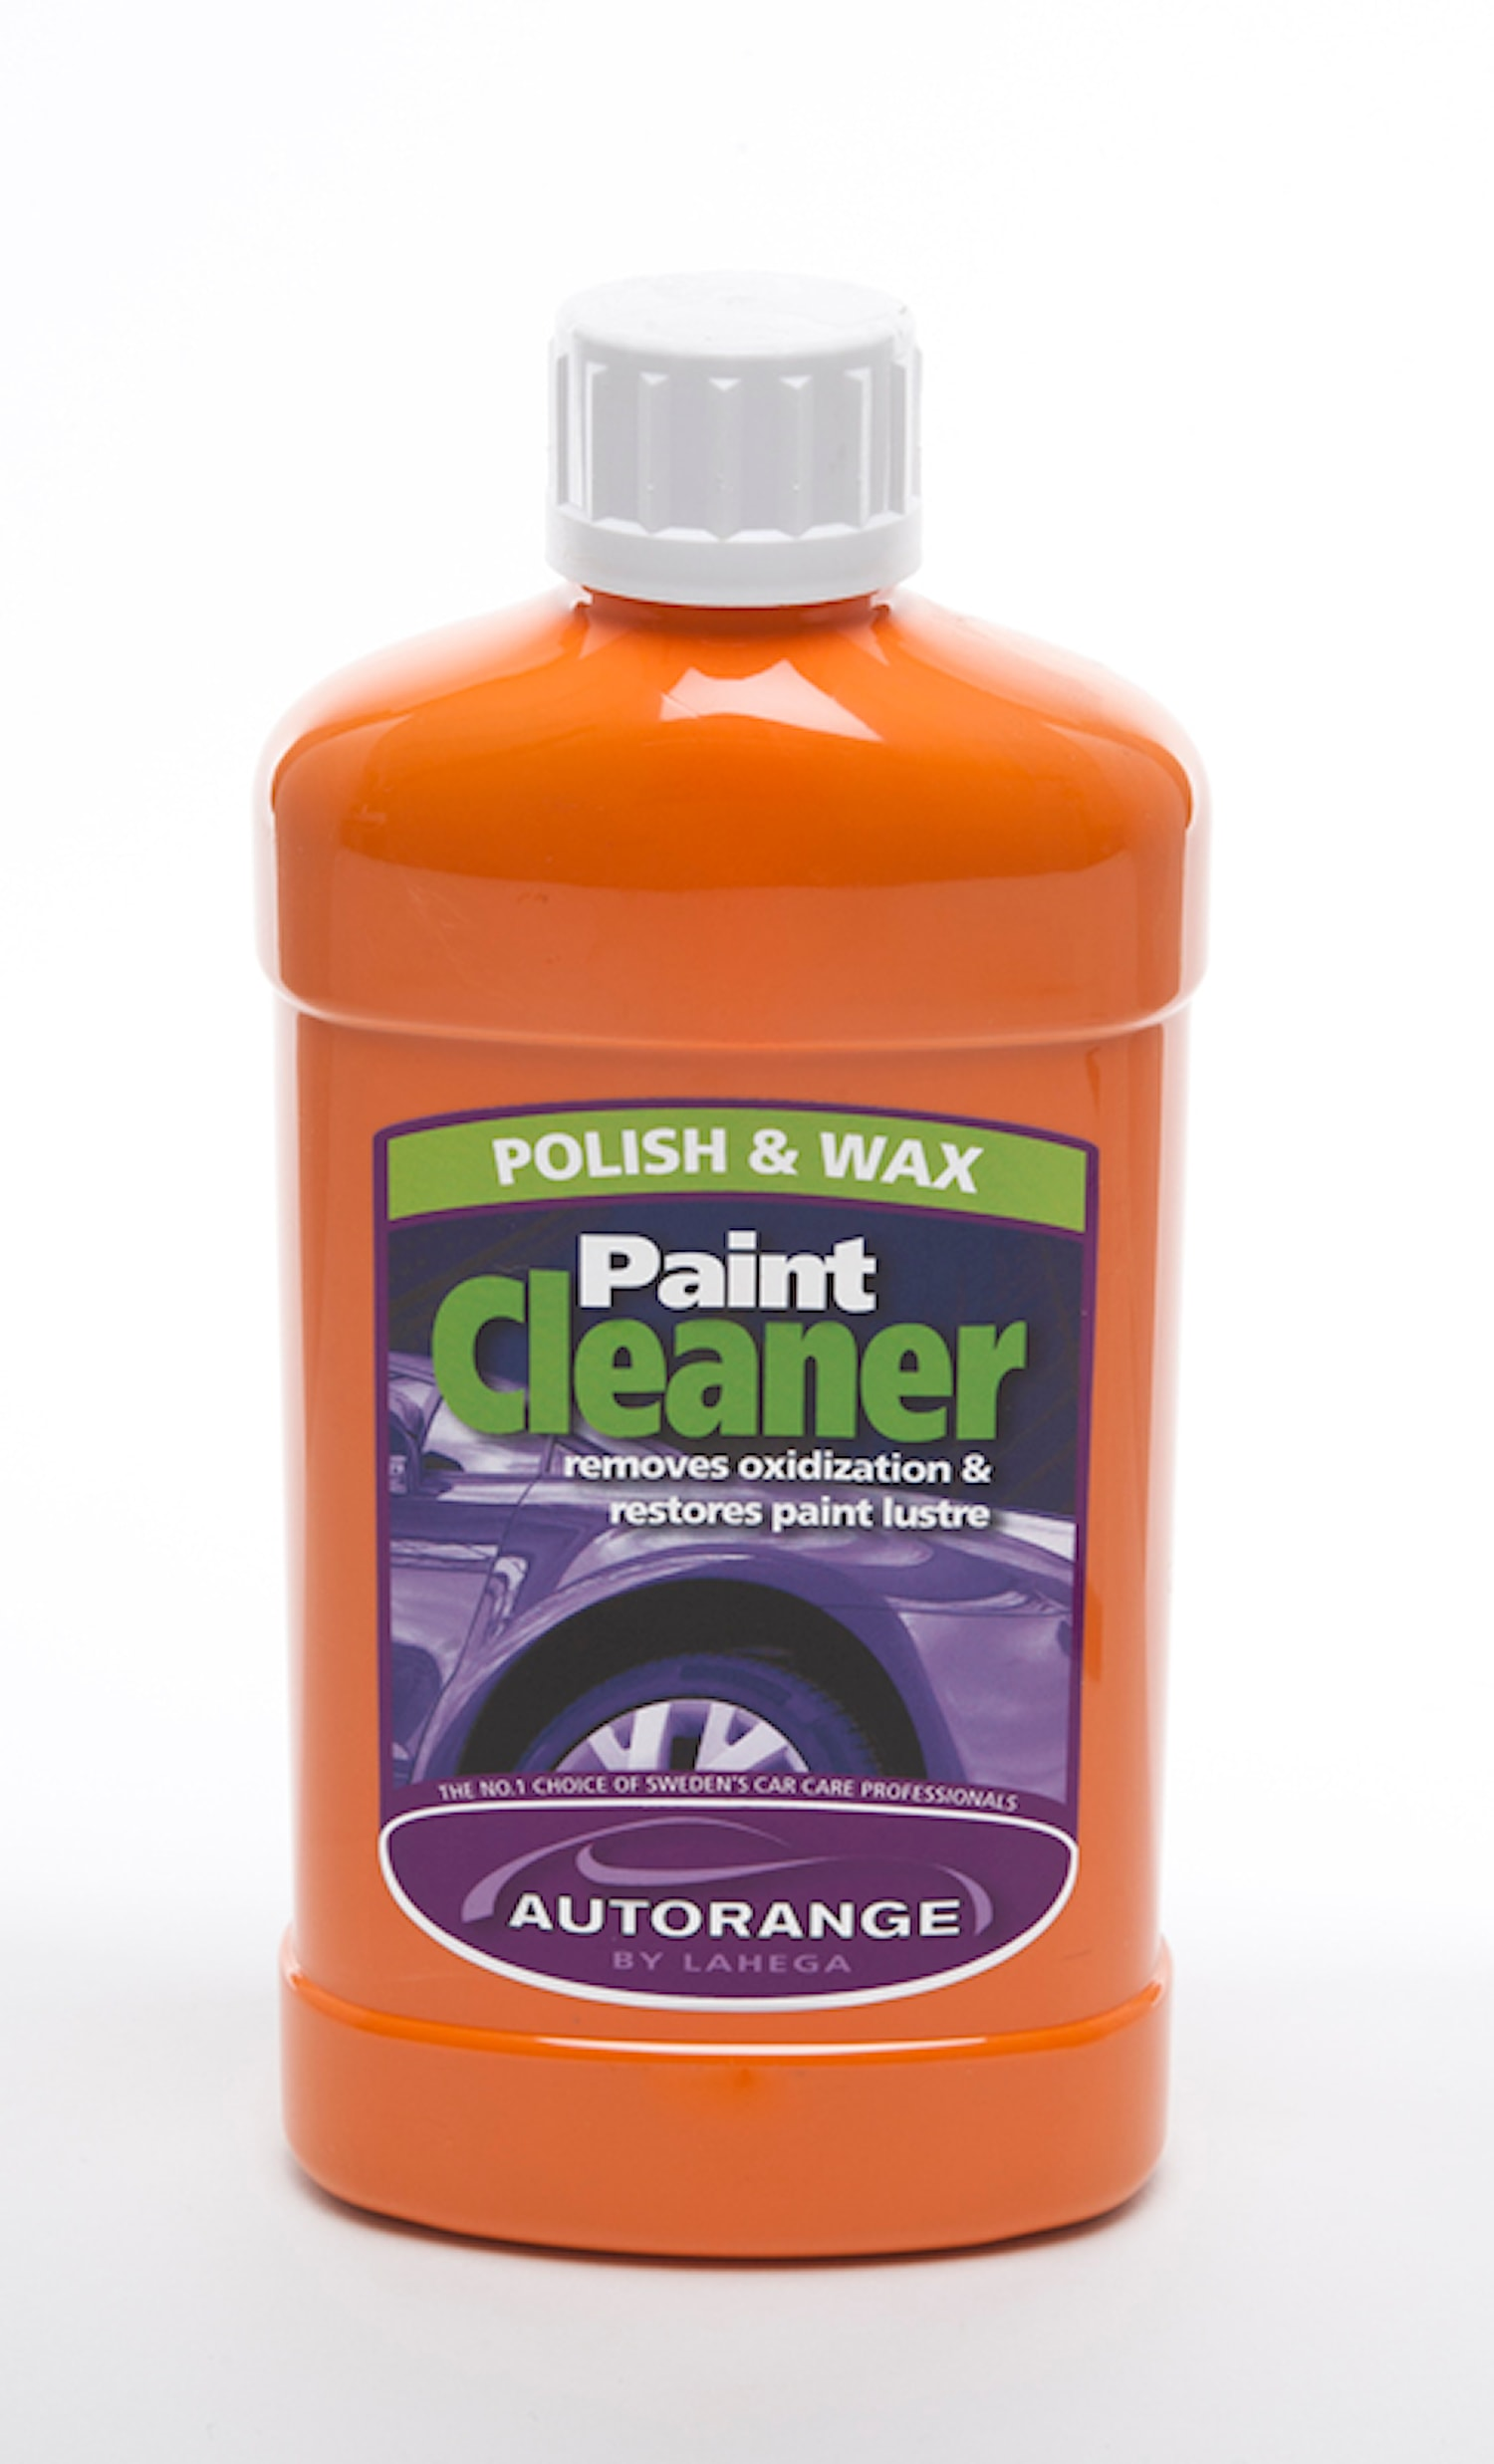 Paint Cleaner